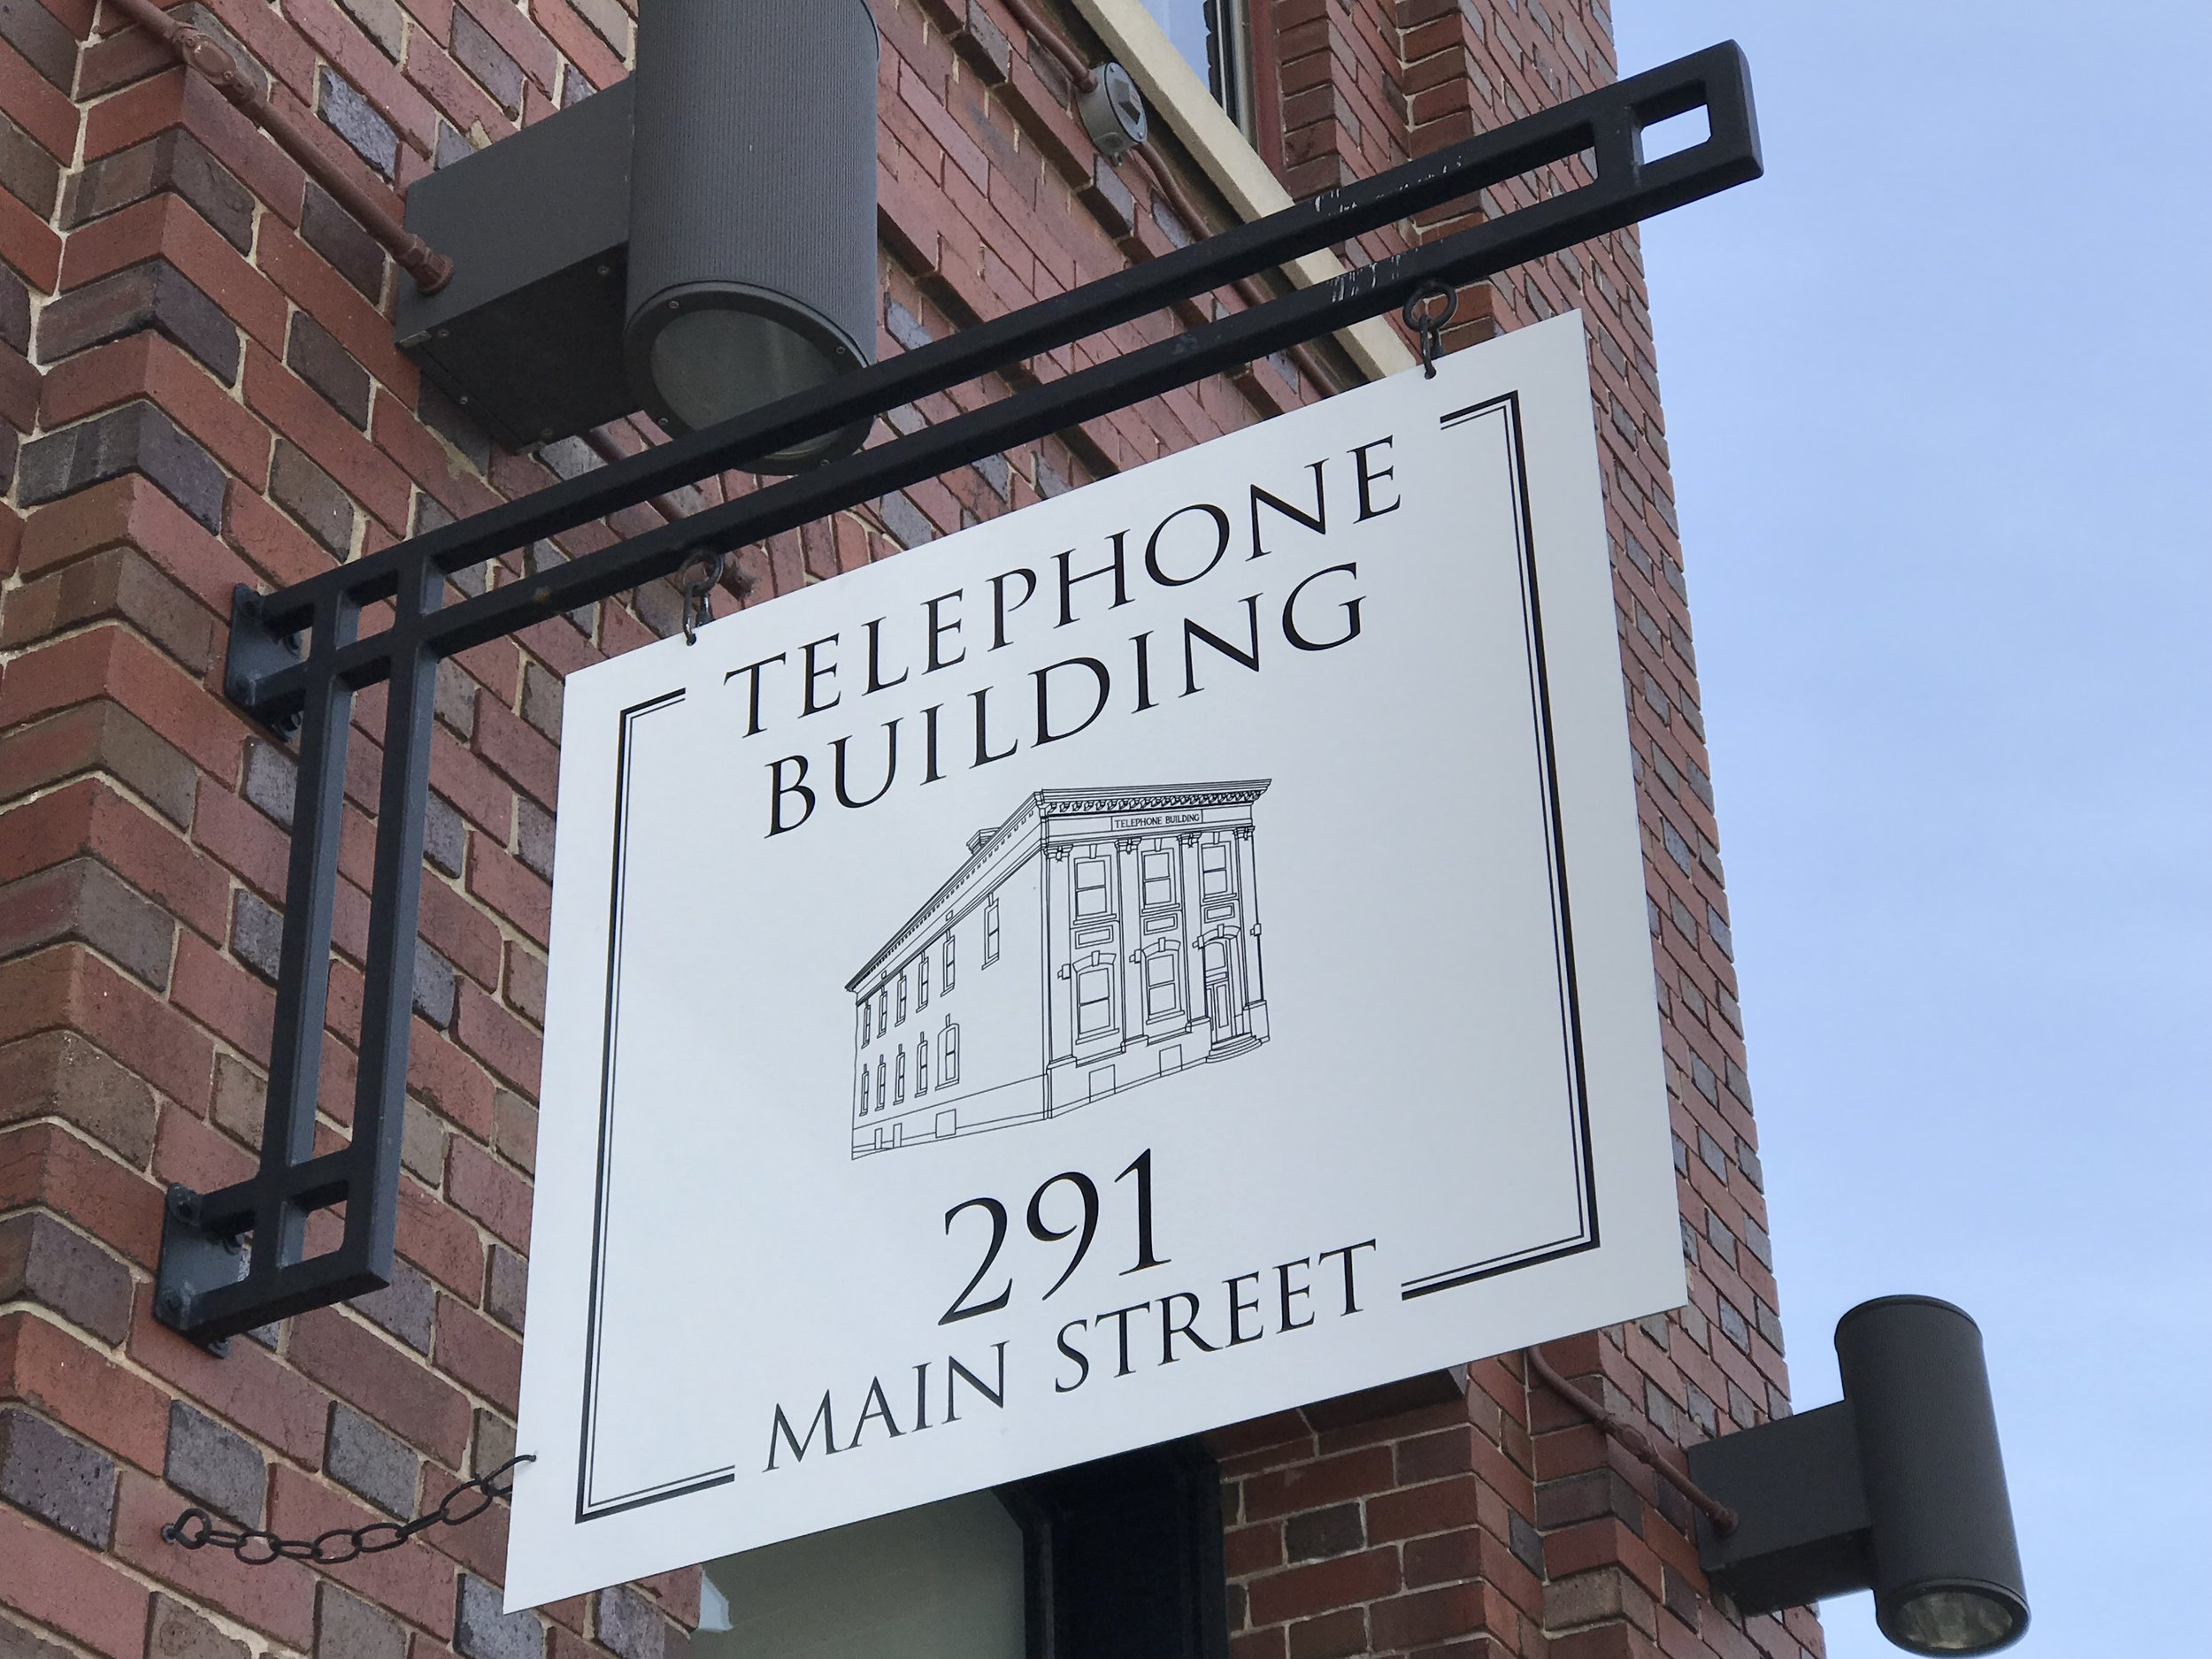 telephone building street sign.jpg